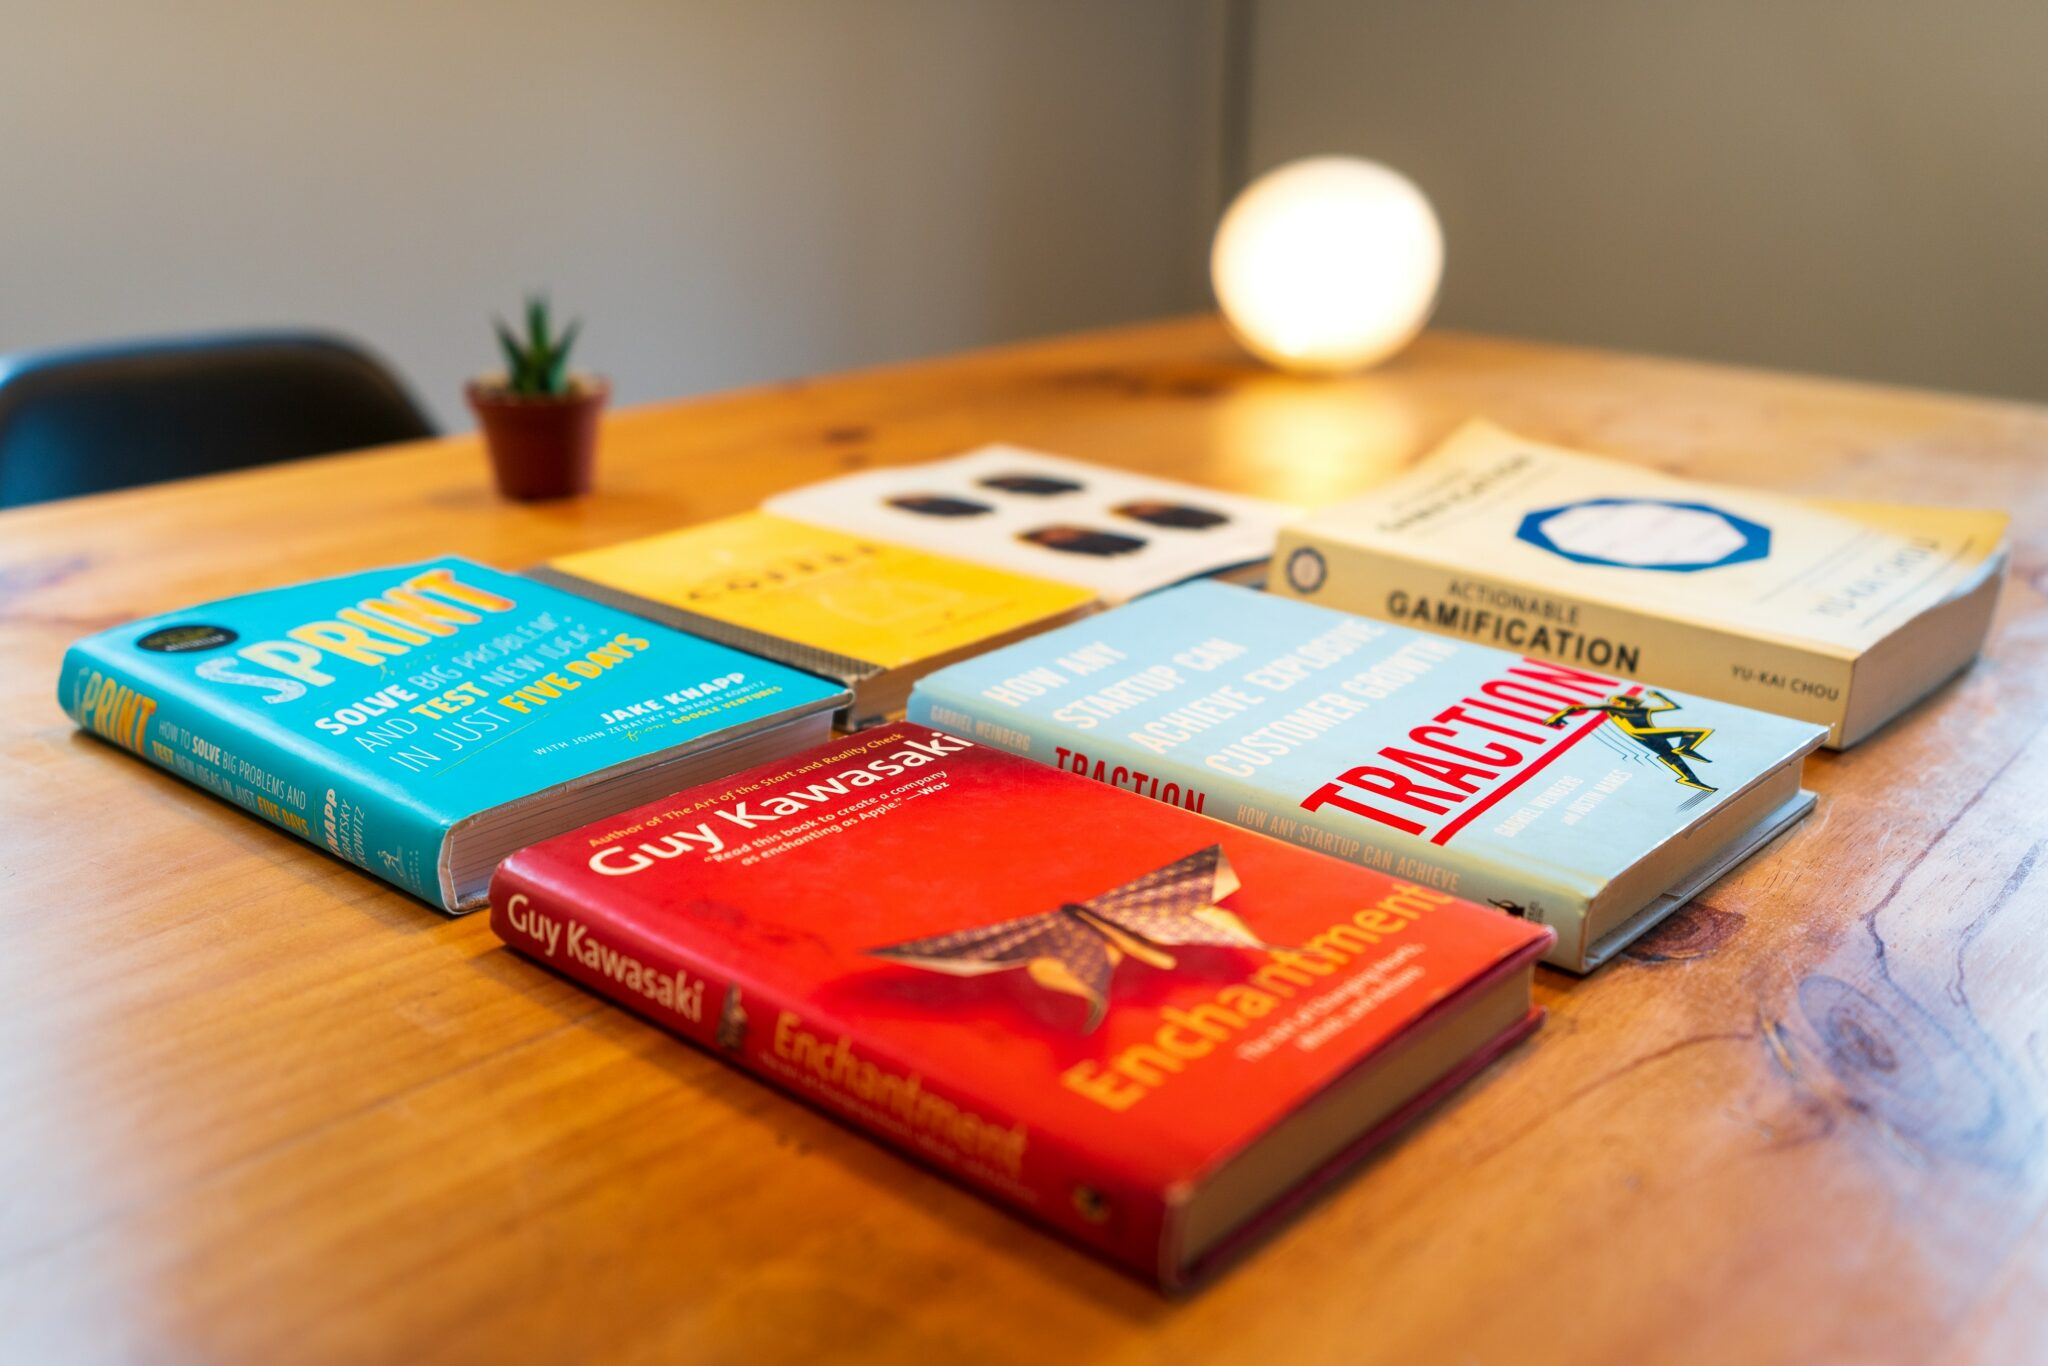 Startup Dictionary: 20 common startup buzzwords briefly explained